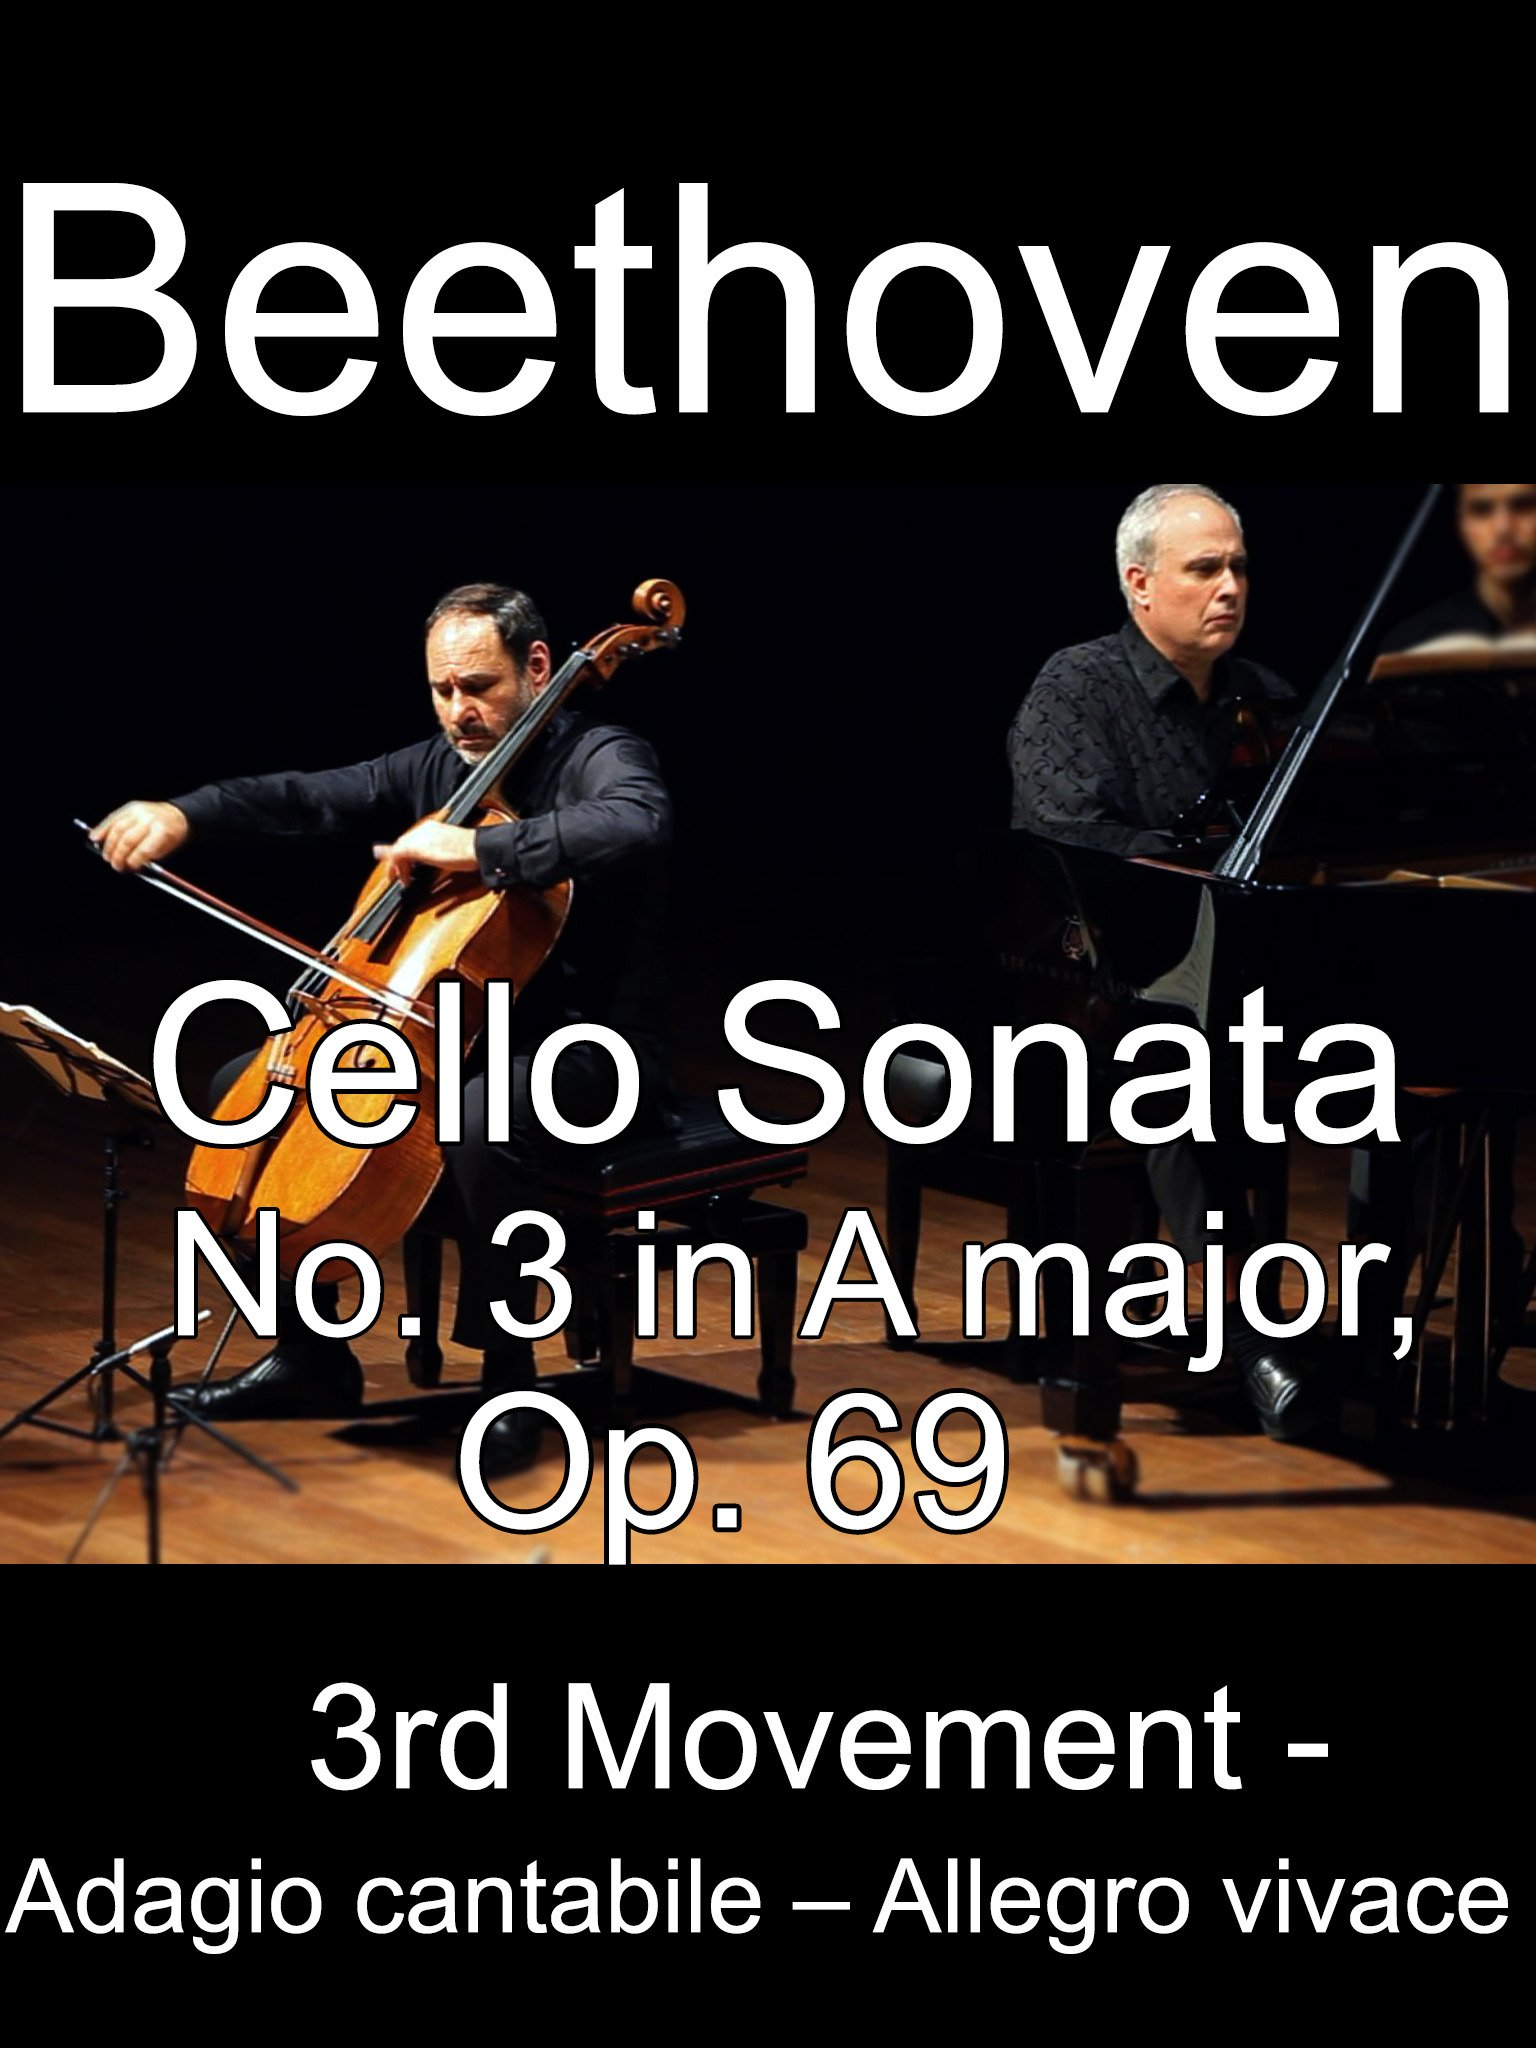 Beethoven's Cello Sonata No. 3 in A major, Op. 69, 3rd movement